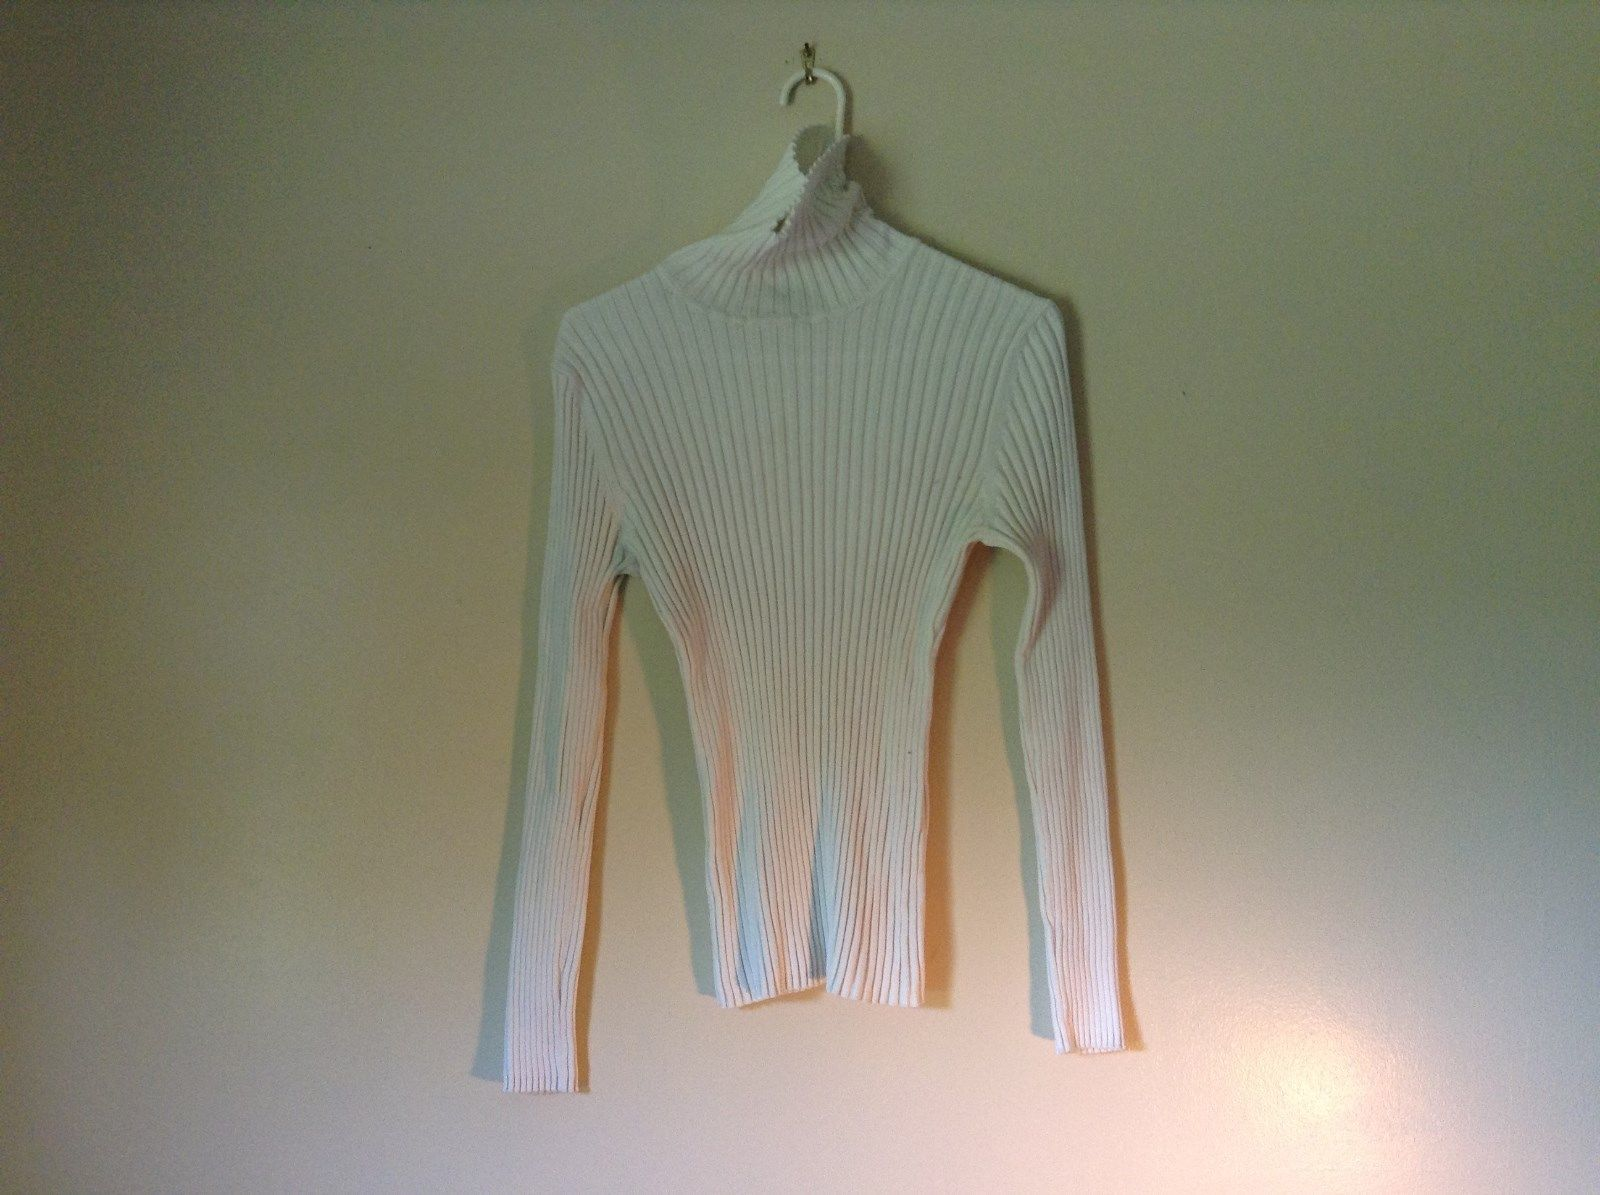 White Long Sleeve Tight Stretchy Turtleneck Top By Its Our Time Size XL